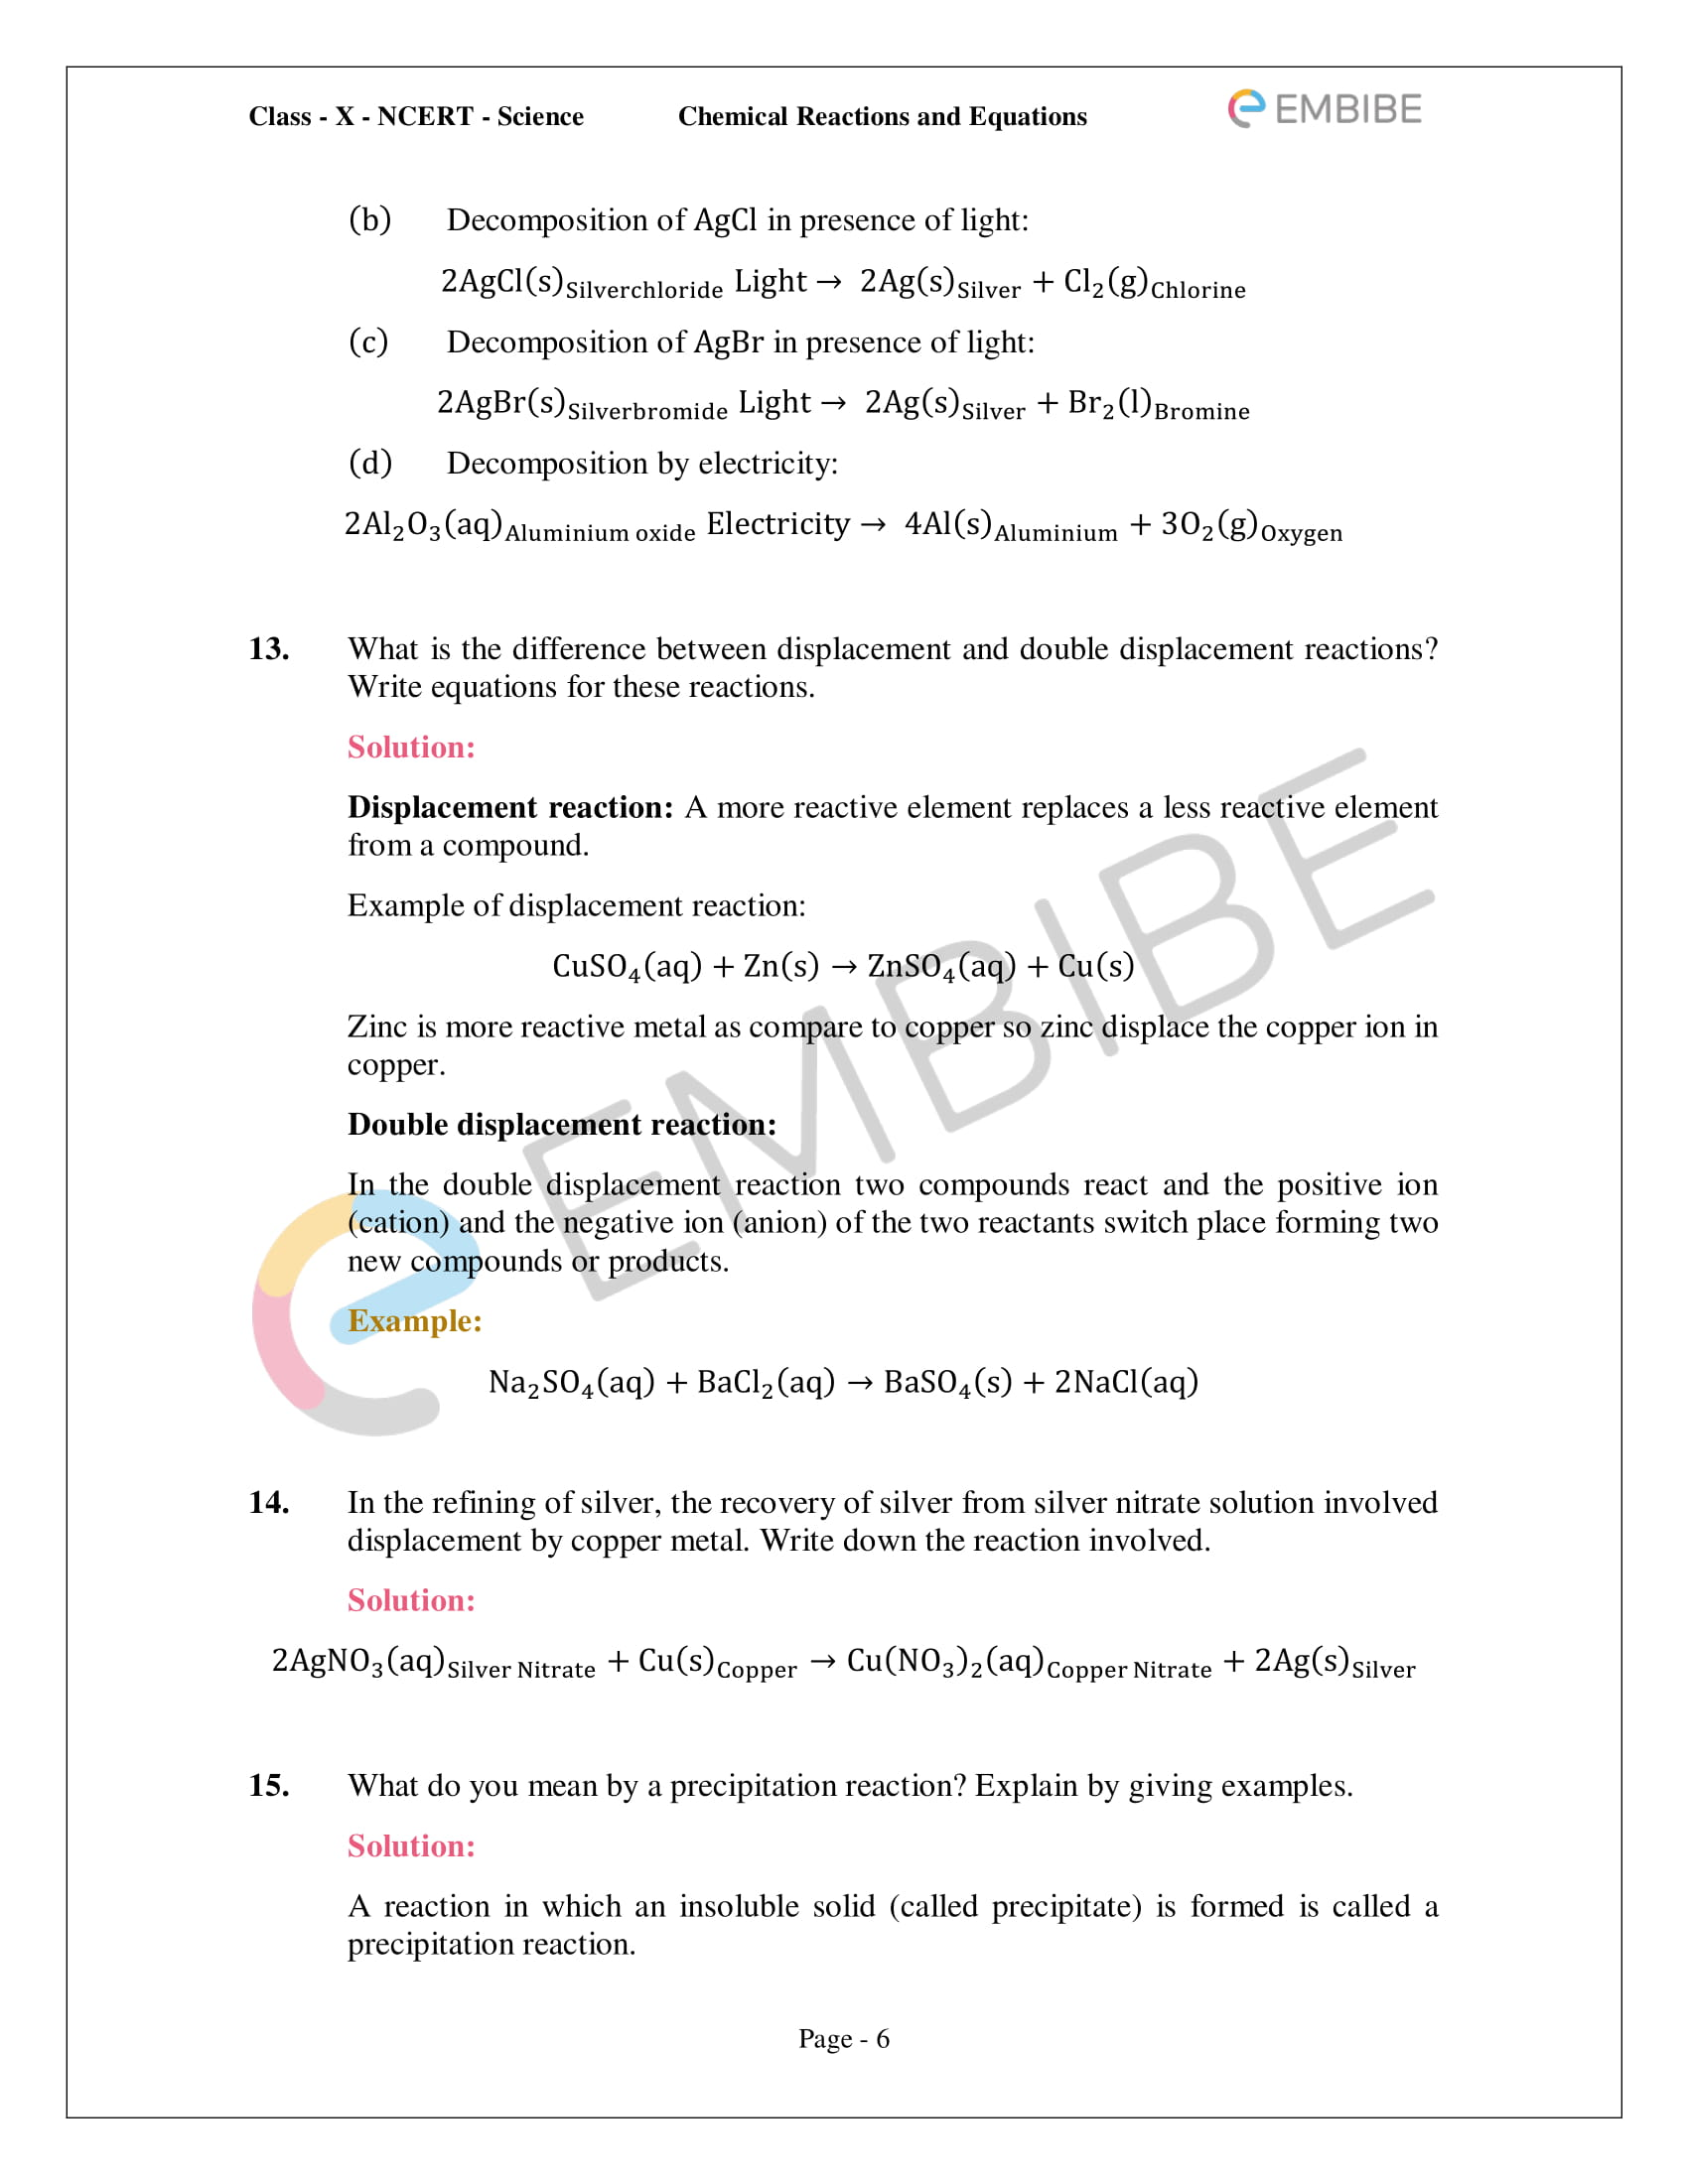 Chemical Reactions and Equations_questions_final _V3 (1)-06